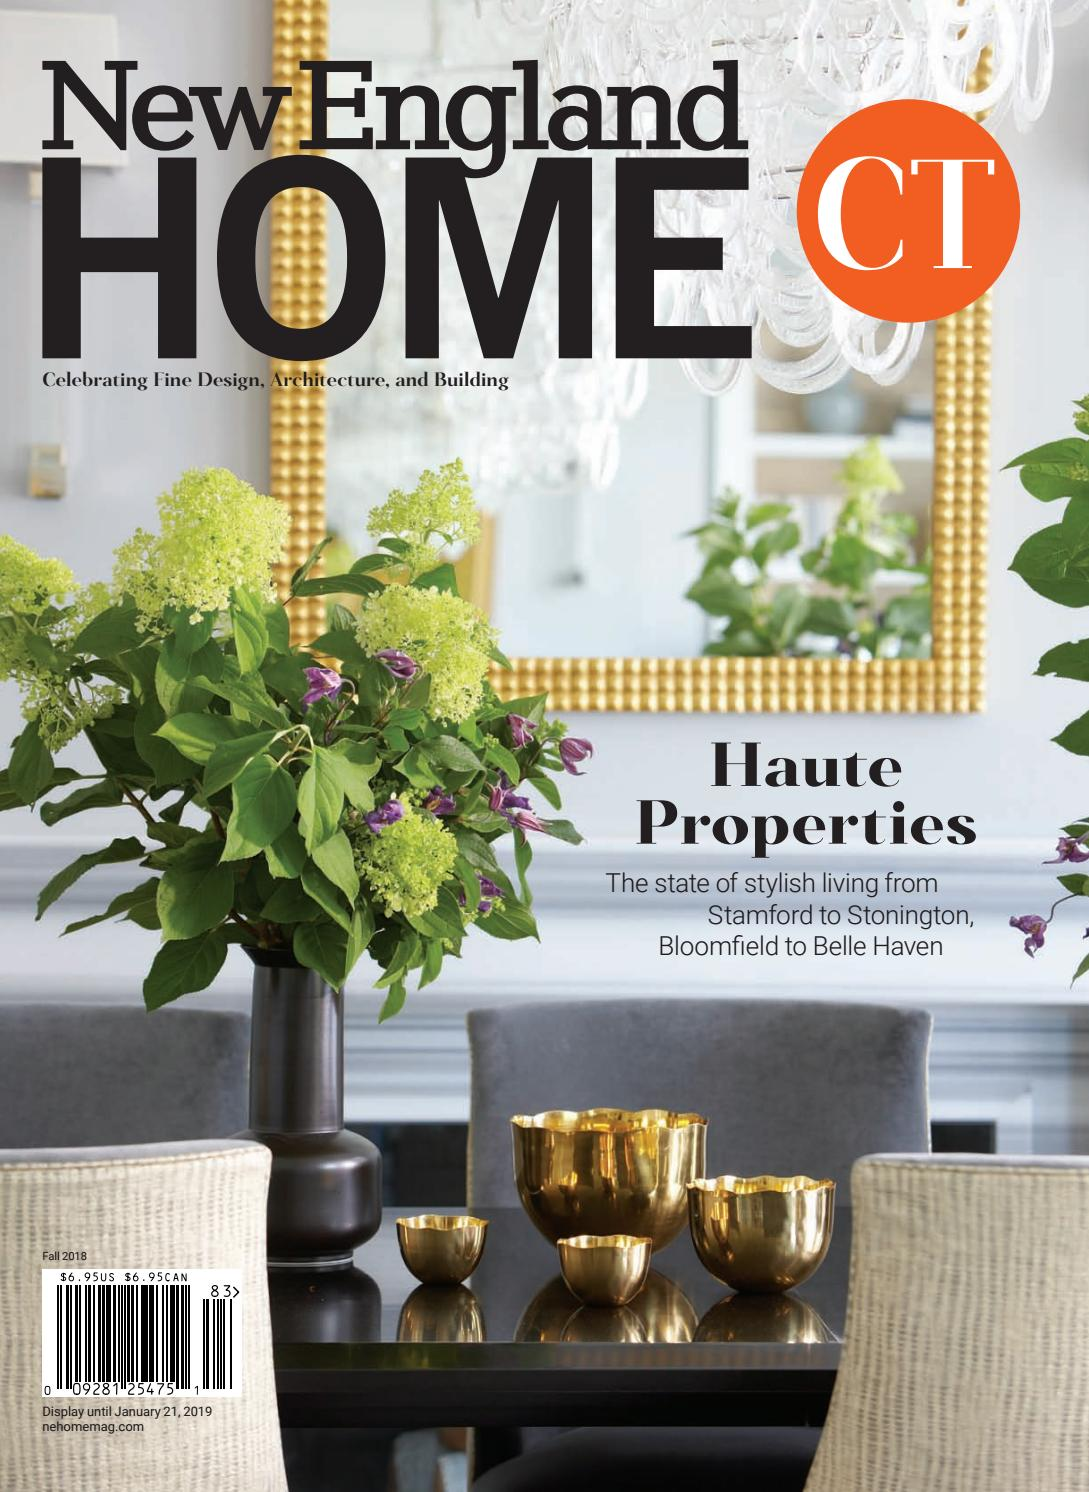 New england home connecticut fall 2018 by new england home magazine llc issuu